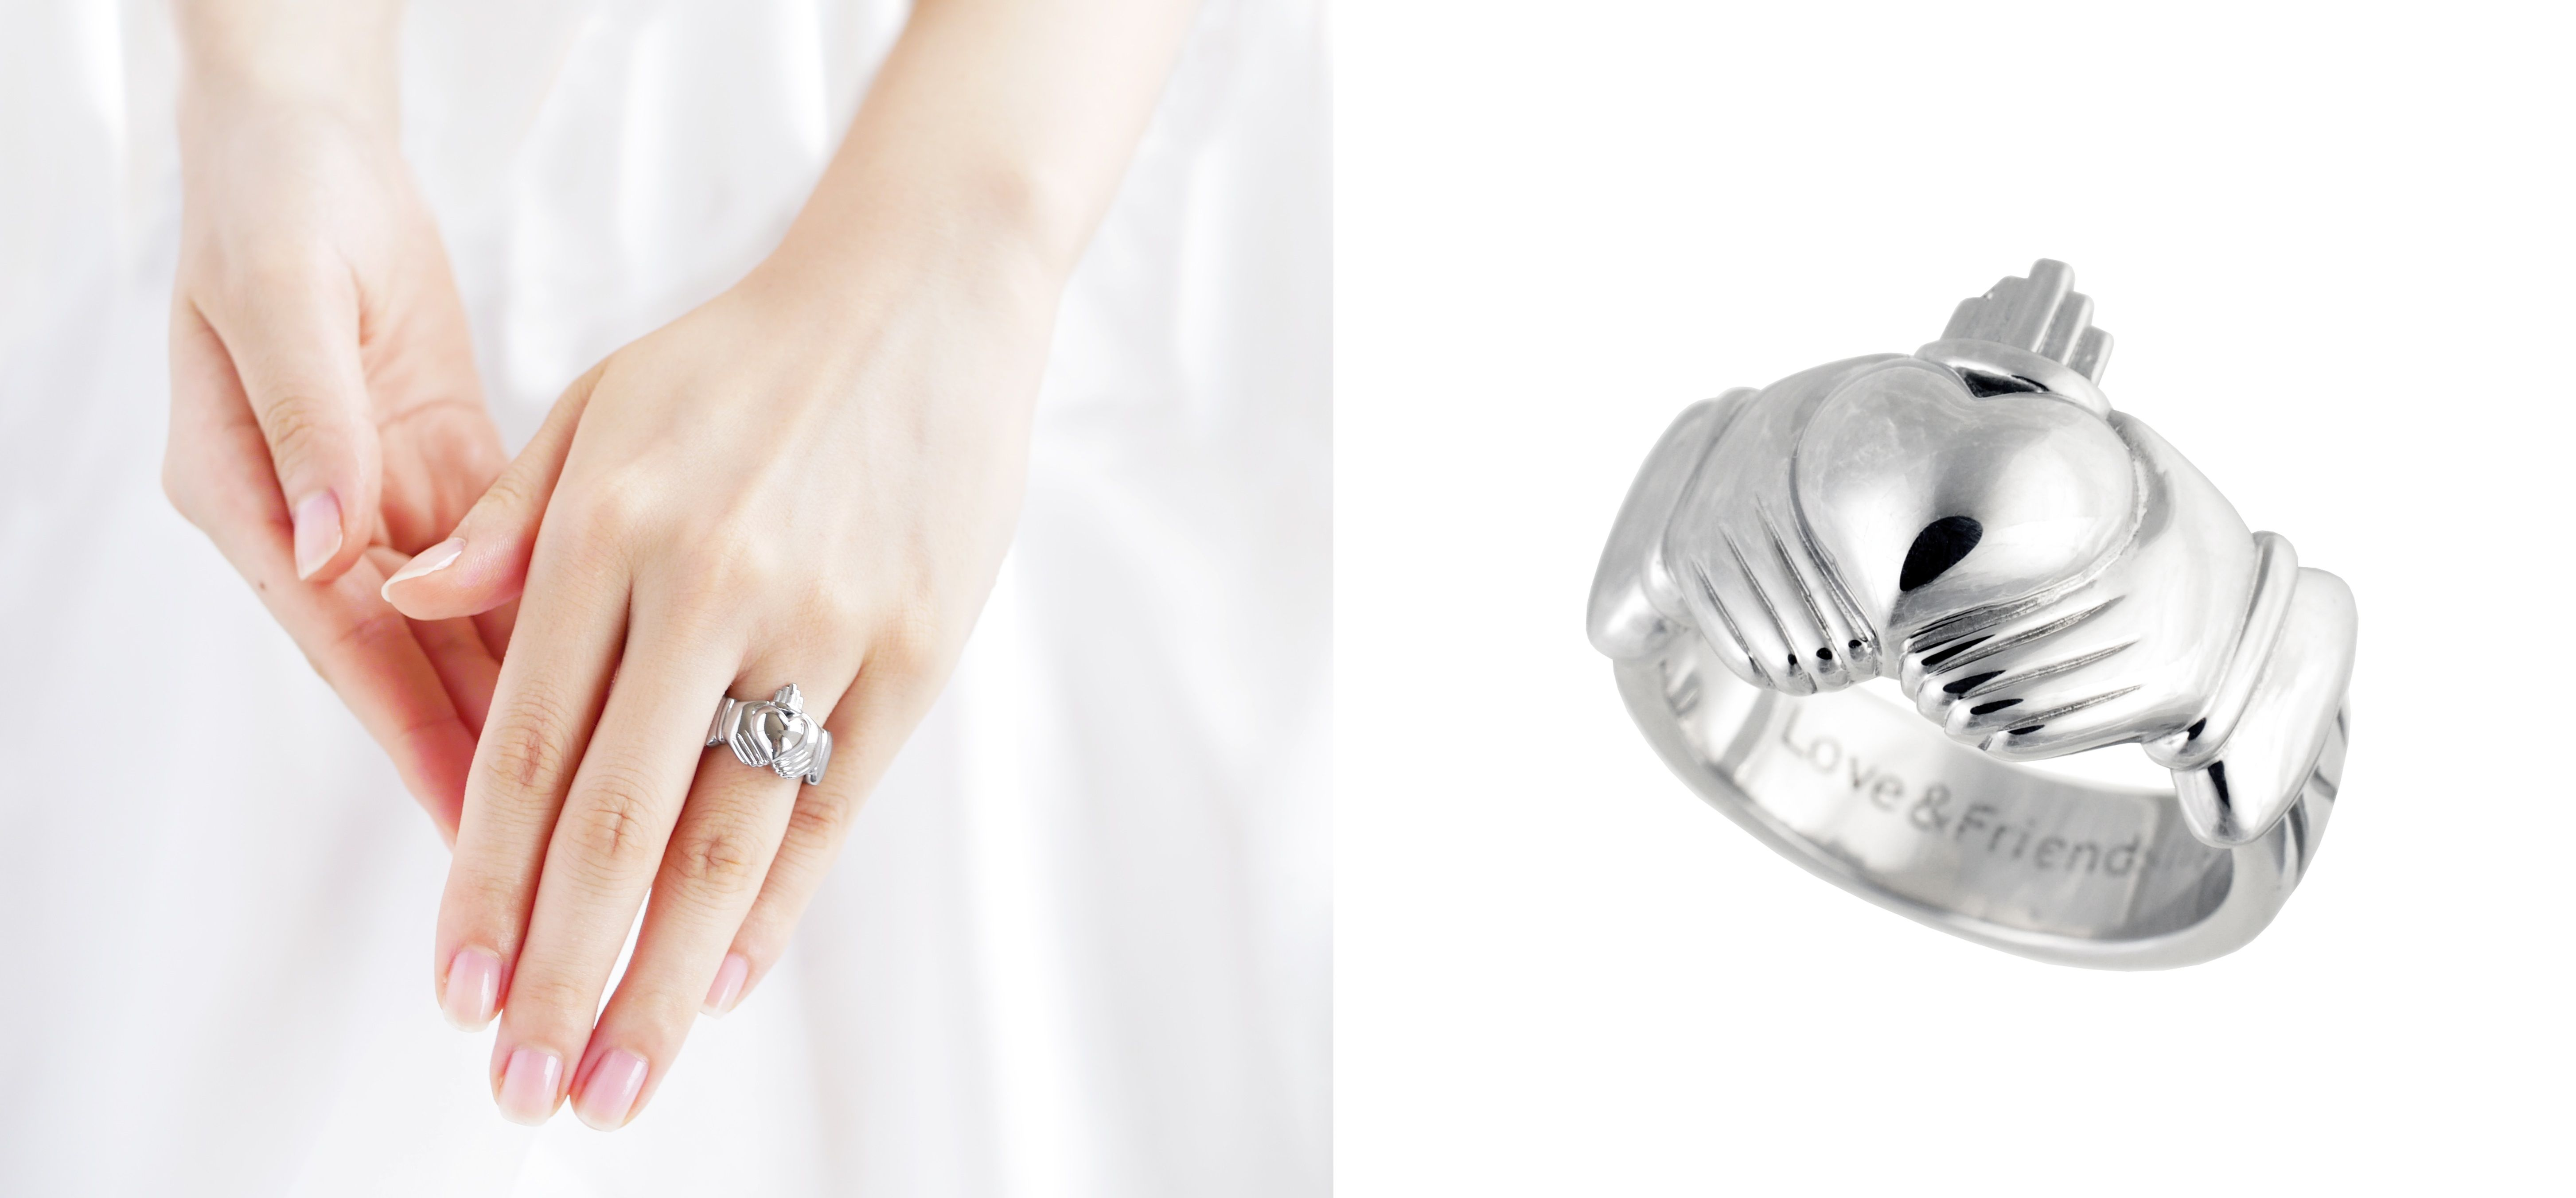 KYOCERA_Introduces_Irish_Claddagh_Ring_Designed_by_Paul_Costelloe.-cps-6356-Image.cpsimage.jpg